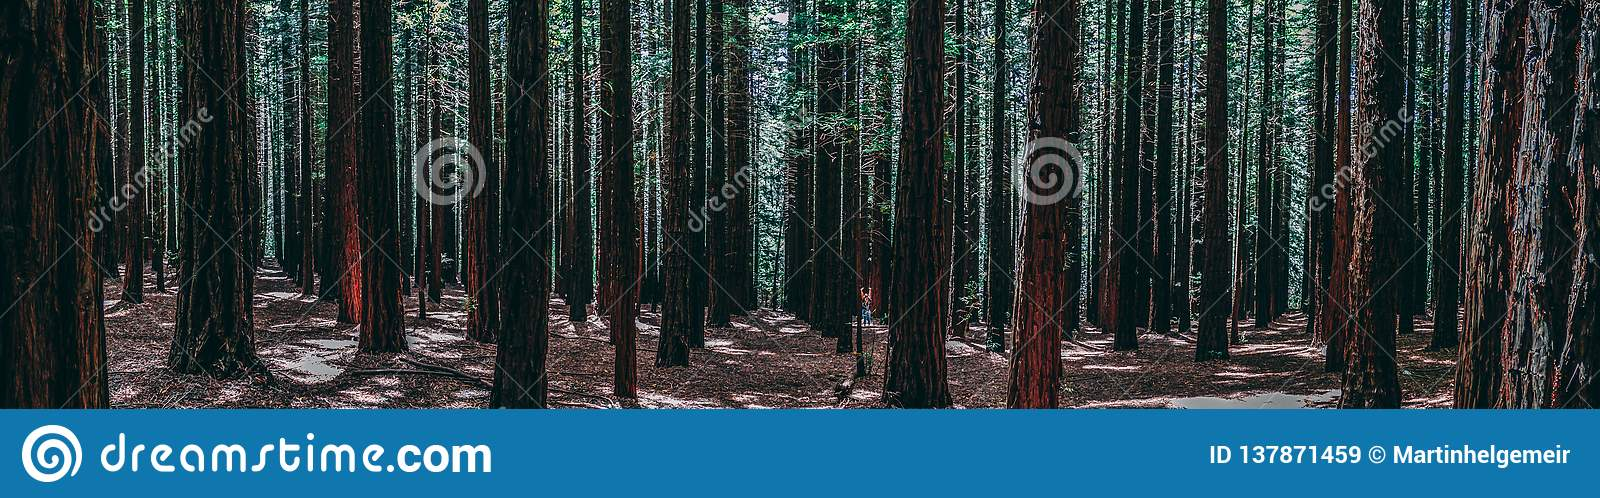 Rows of trees at the Redwood Forest Warburton in the Yarra Valley. Melbourne, Australia